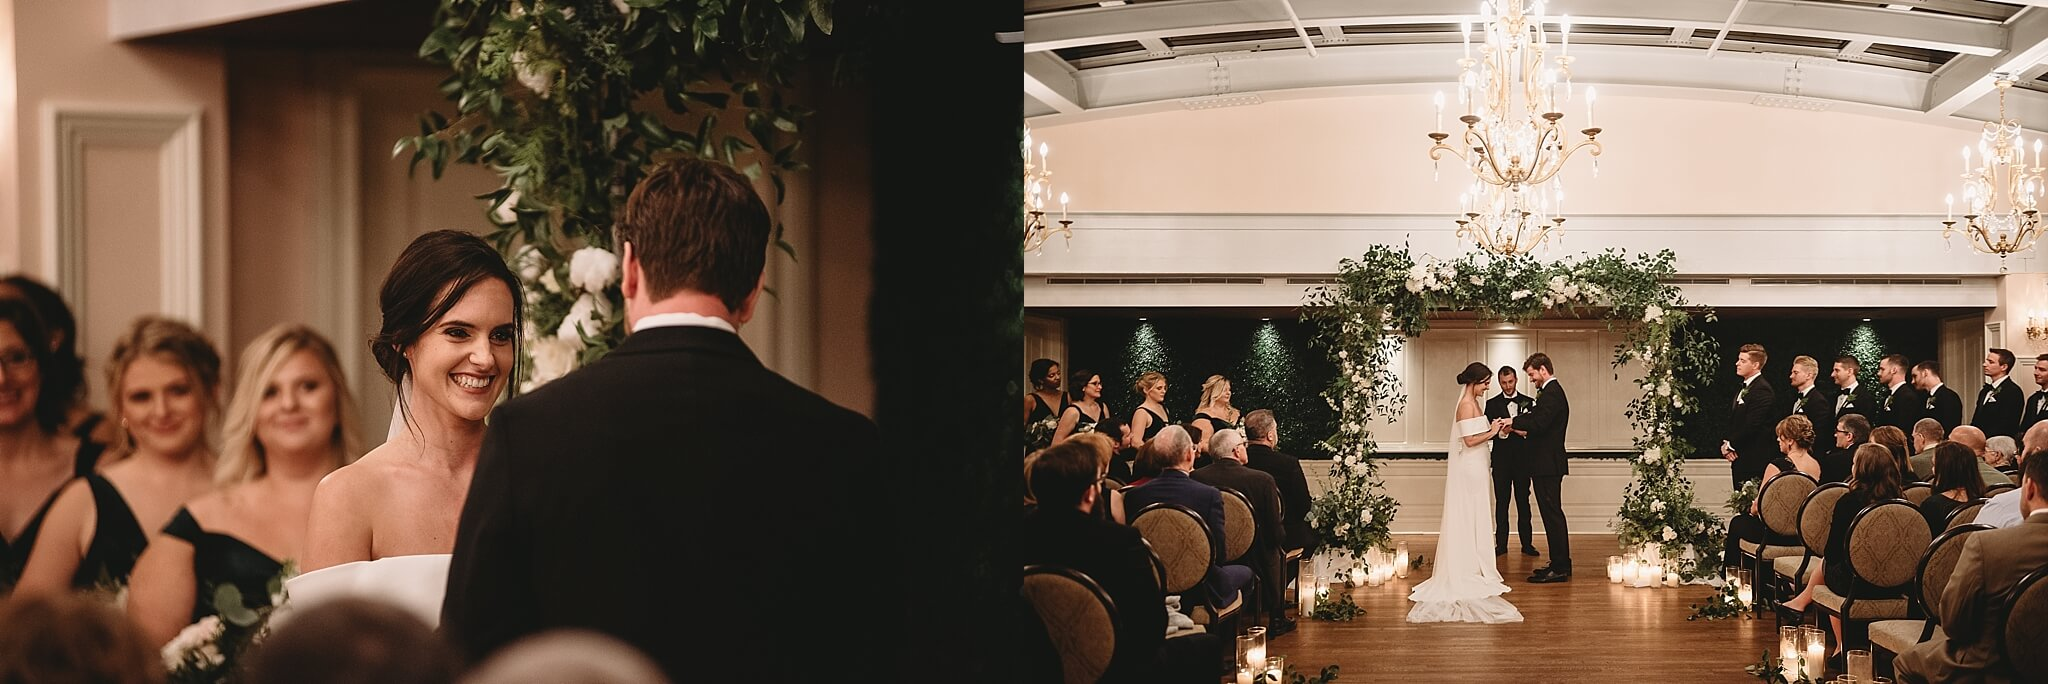 The Madison Club Wedding Ceremony